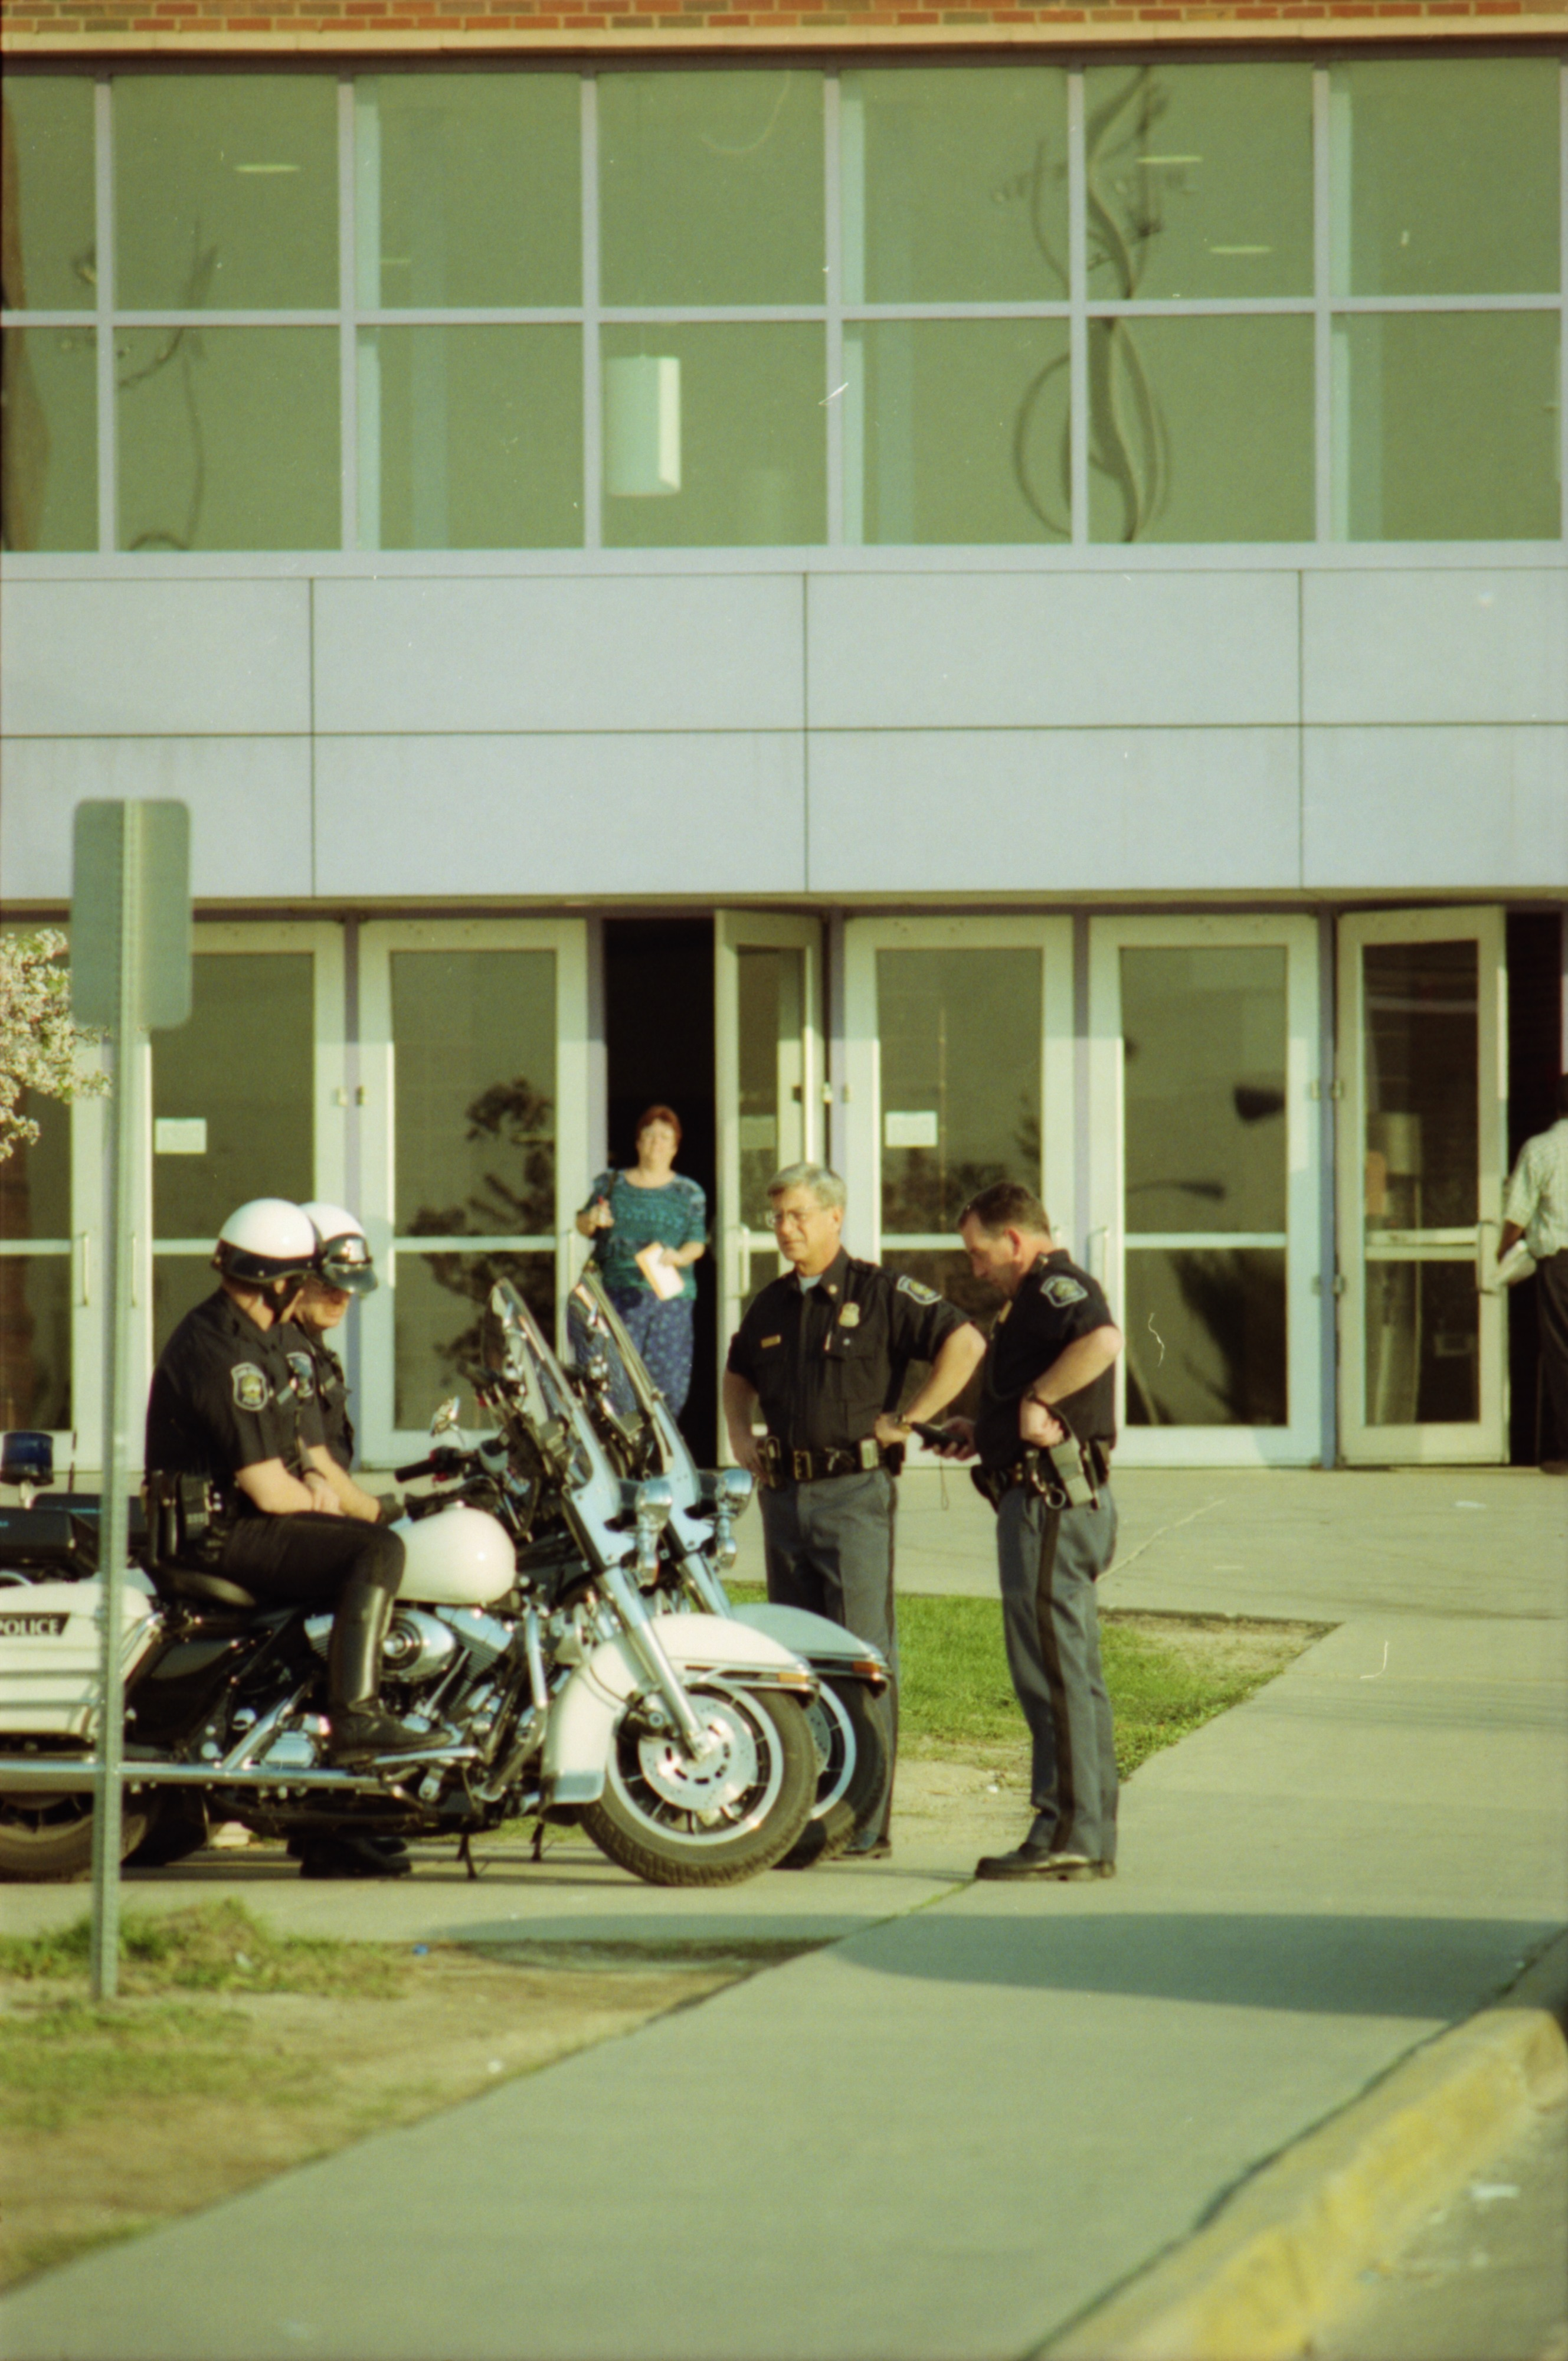 Police at Pioneer High School, May 1999 image